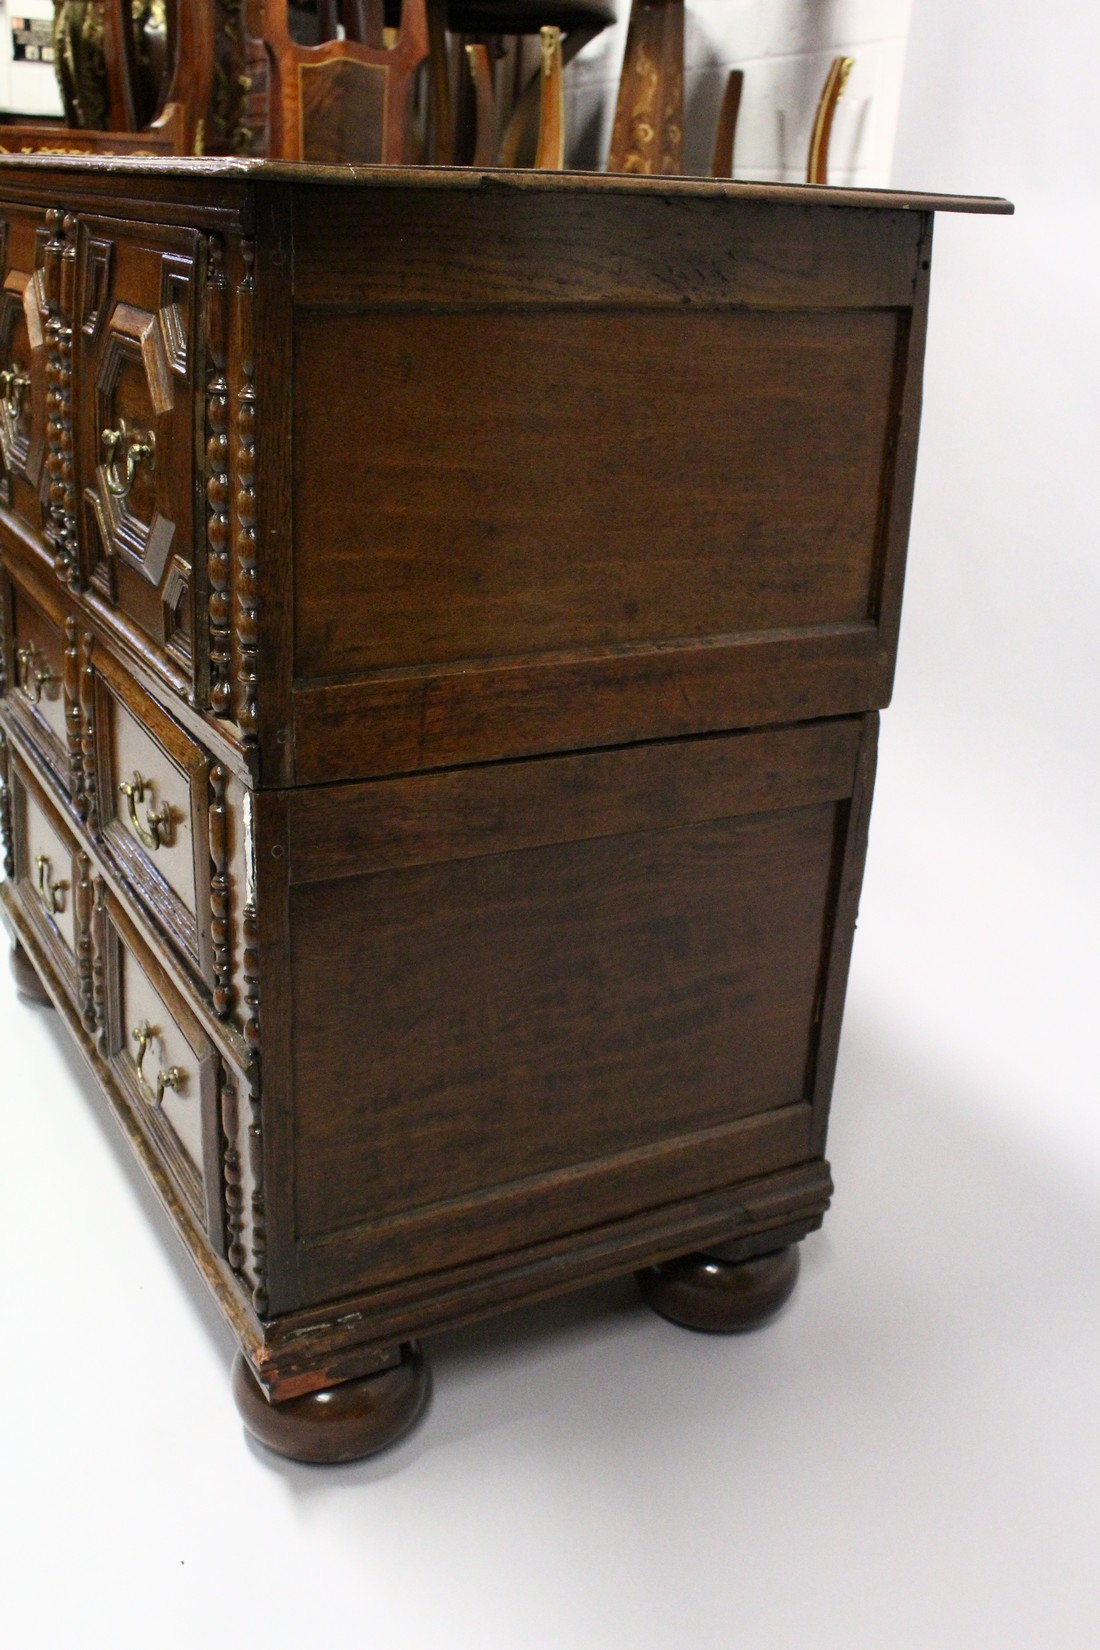 A GOOD LATE 17TH CENTURY LIGHT OAK TWO PIECE LINEN FOLD FRONT CHEST OF THREE DRAWERS, with - Image 4 of 6